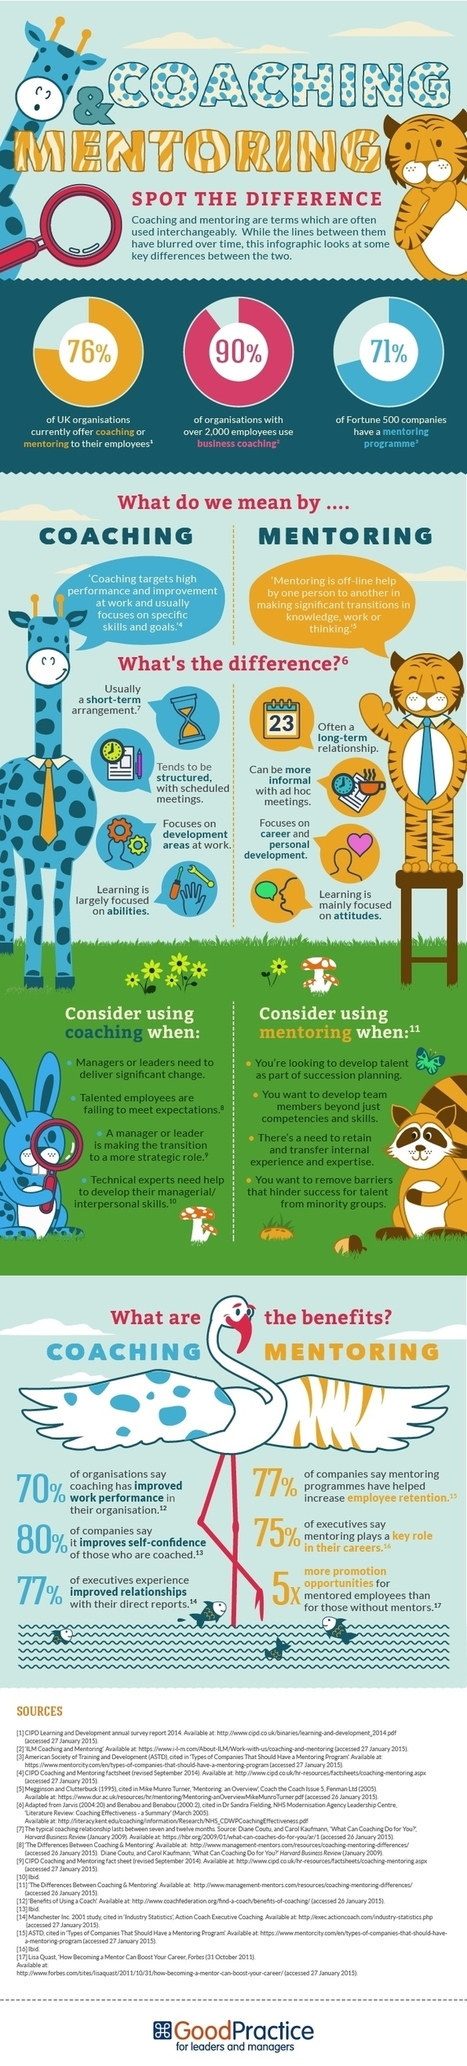 Coaching vs Mentoring Infographic - e-Learning Infographics | formations | Scoop.it